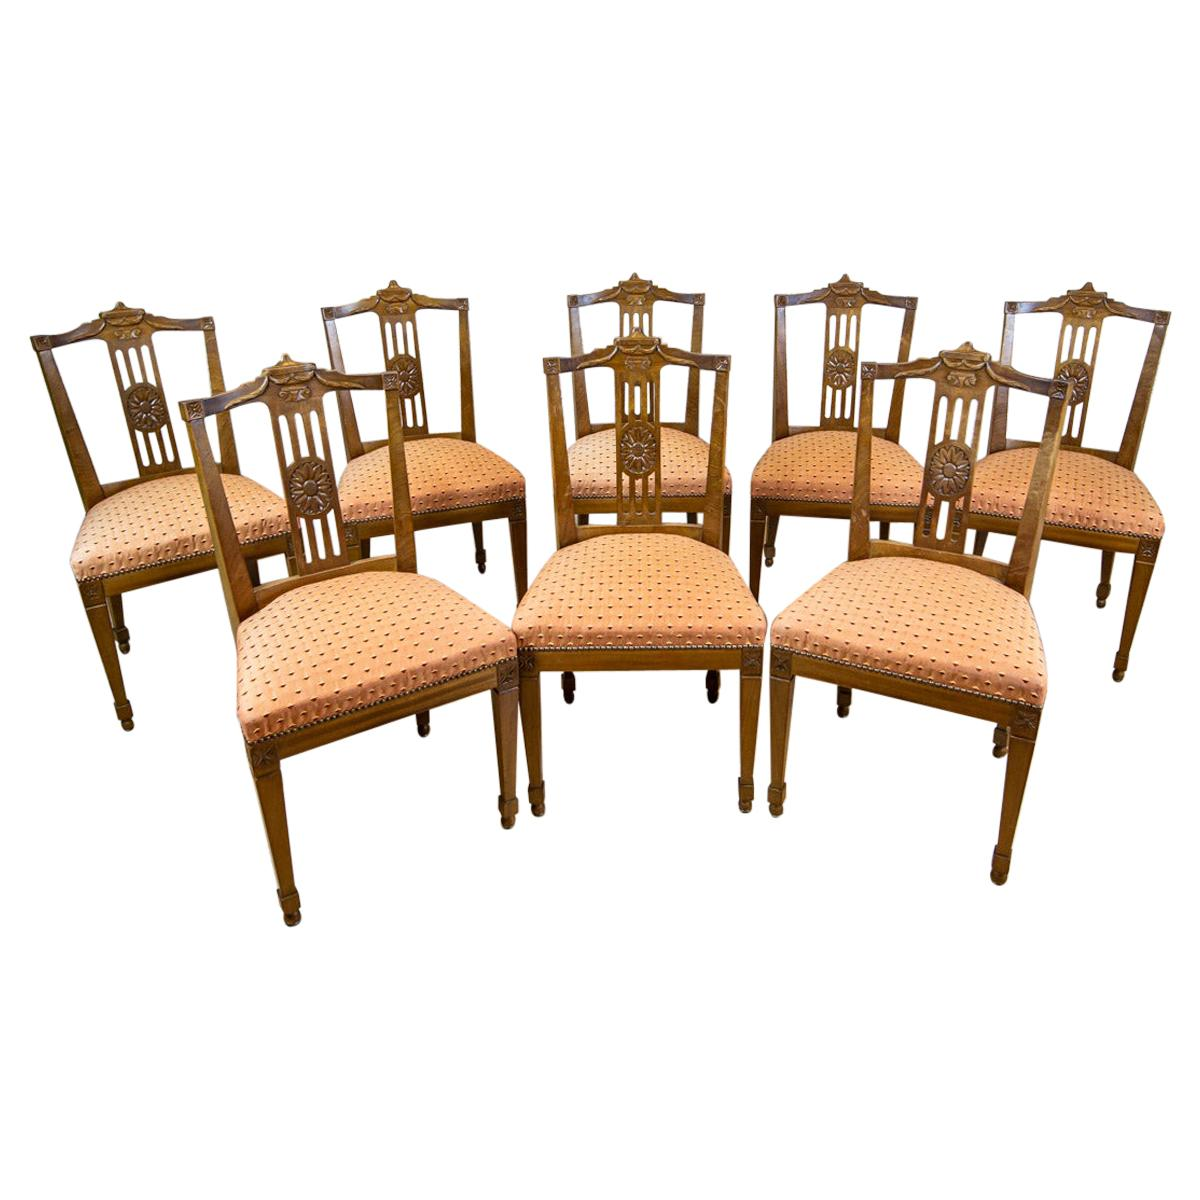 Set of Eight 19th-Century Empire Ash Chairs